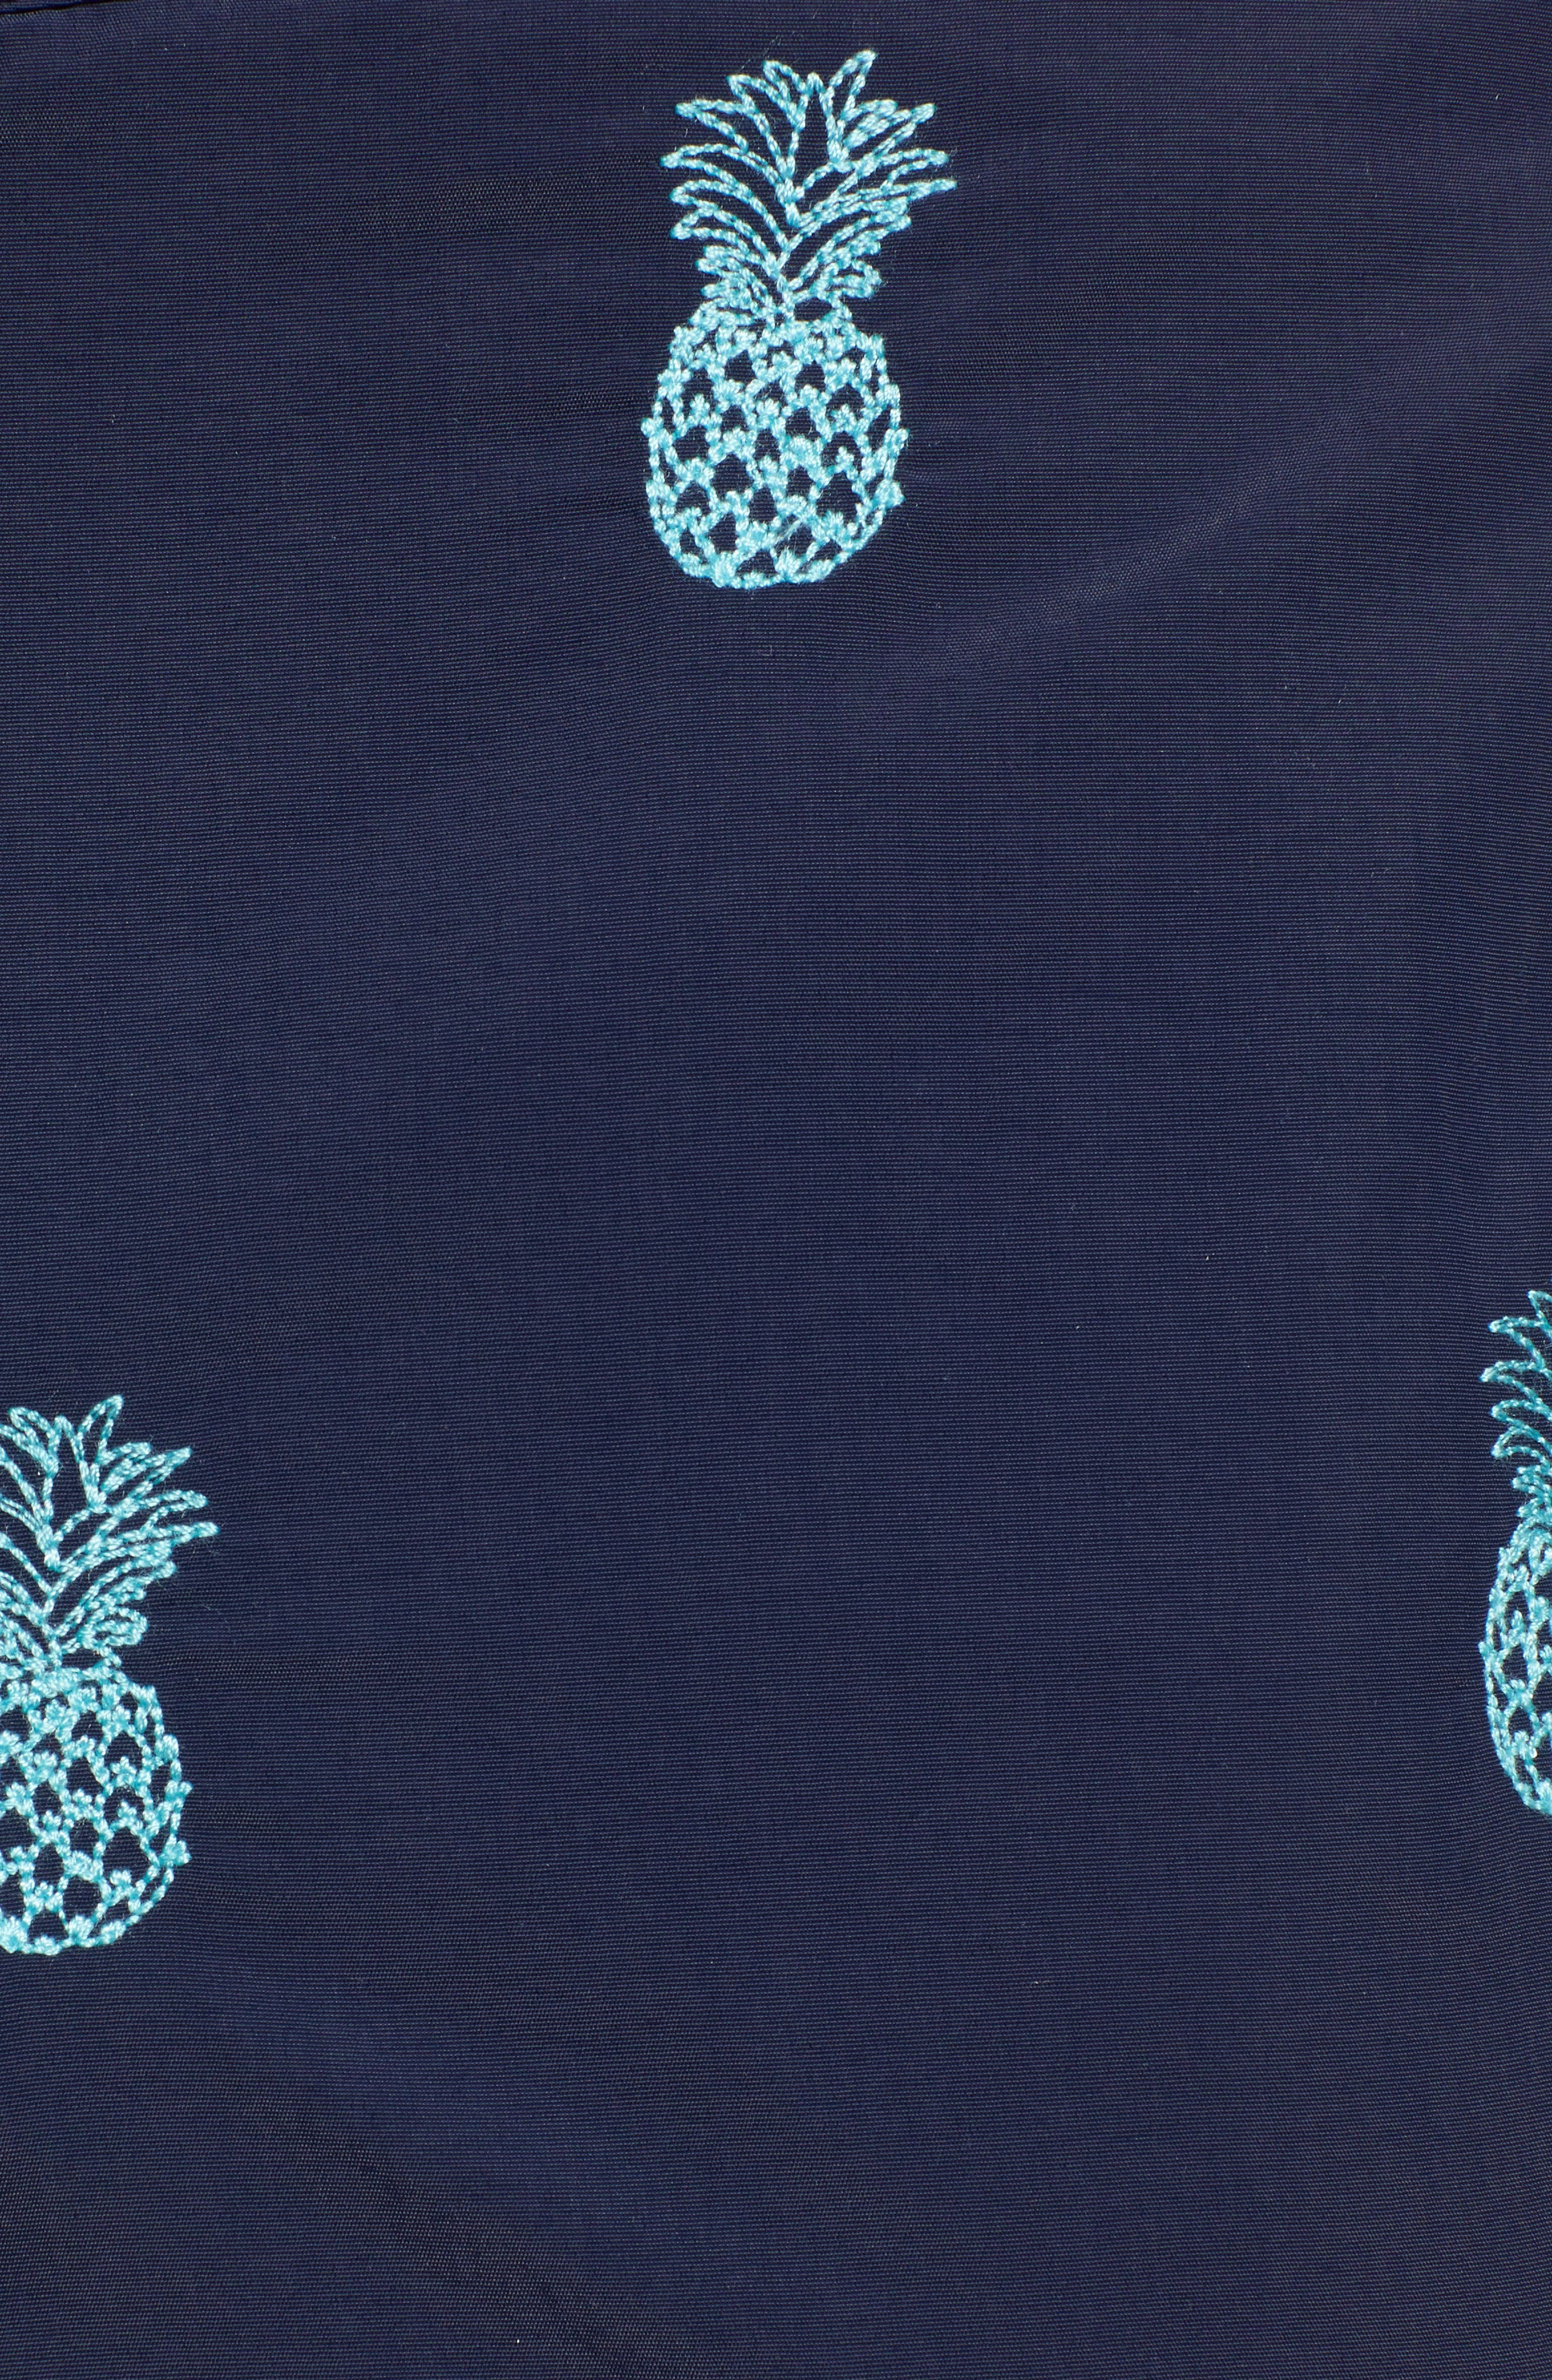 Aruba Embroidered 8.5 Inch Swim Trunks,                             Alternate thumbnail 5, color,                             NAVY EMBROIDERED PINEAPPLES